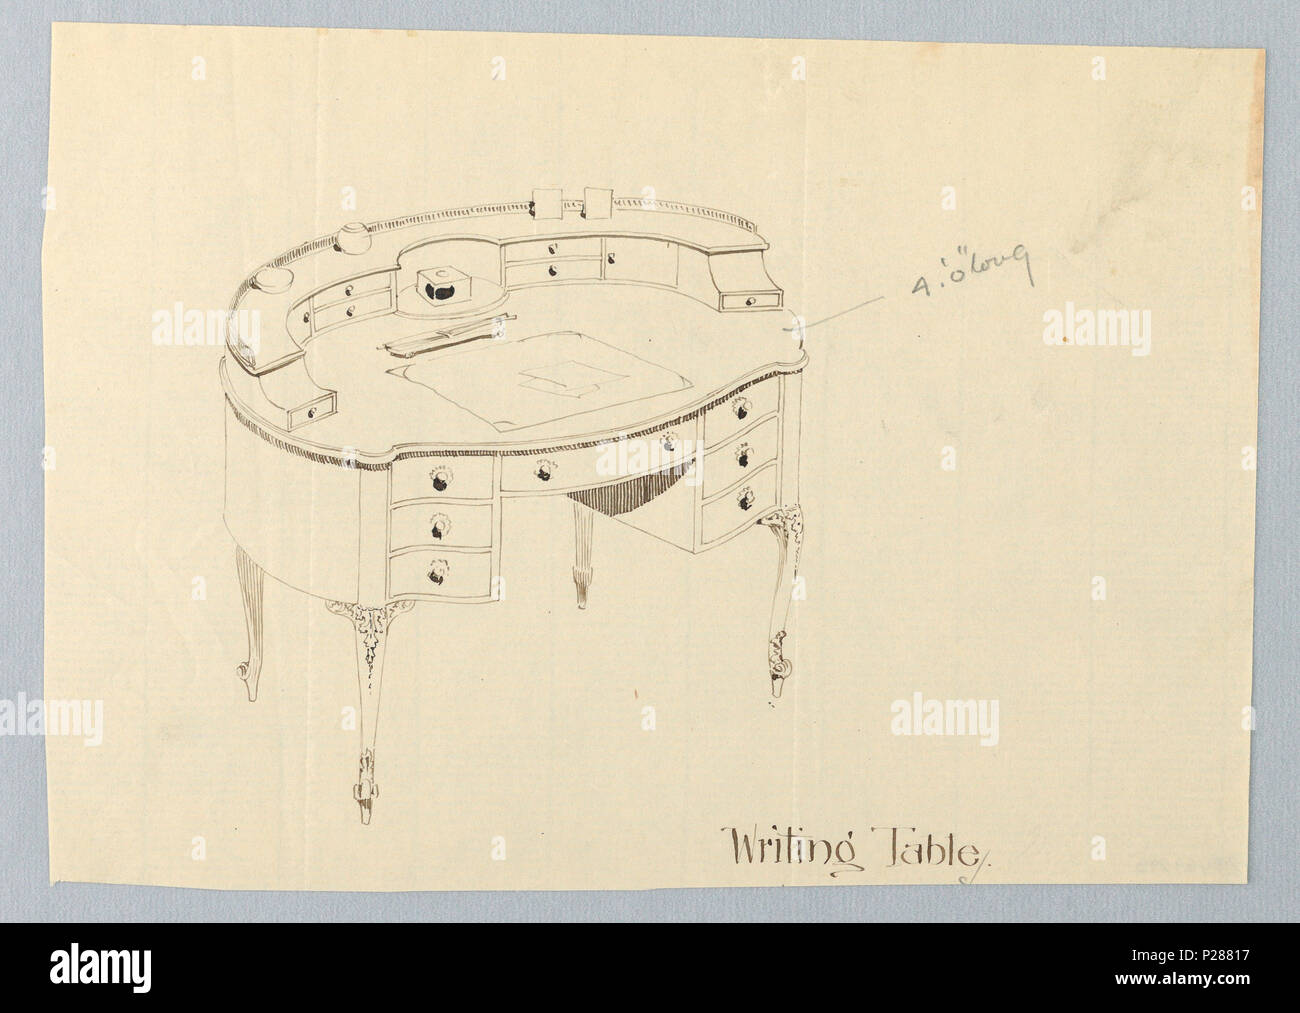 102 Drawing, Design for Oval Writing Table with Blotter and Letter Opener Atop, 1900–05 (CH 18681415) - Stock Image